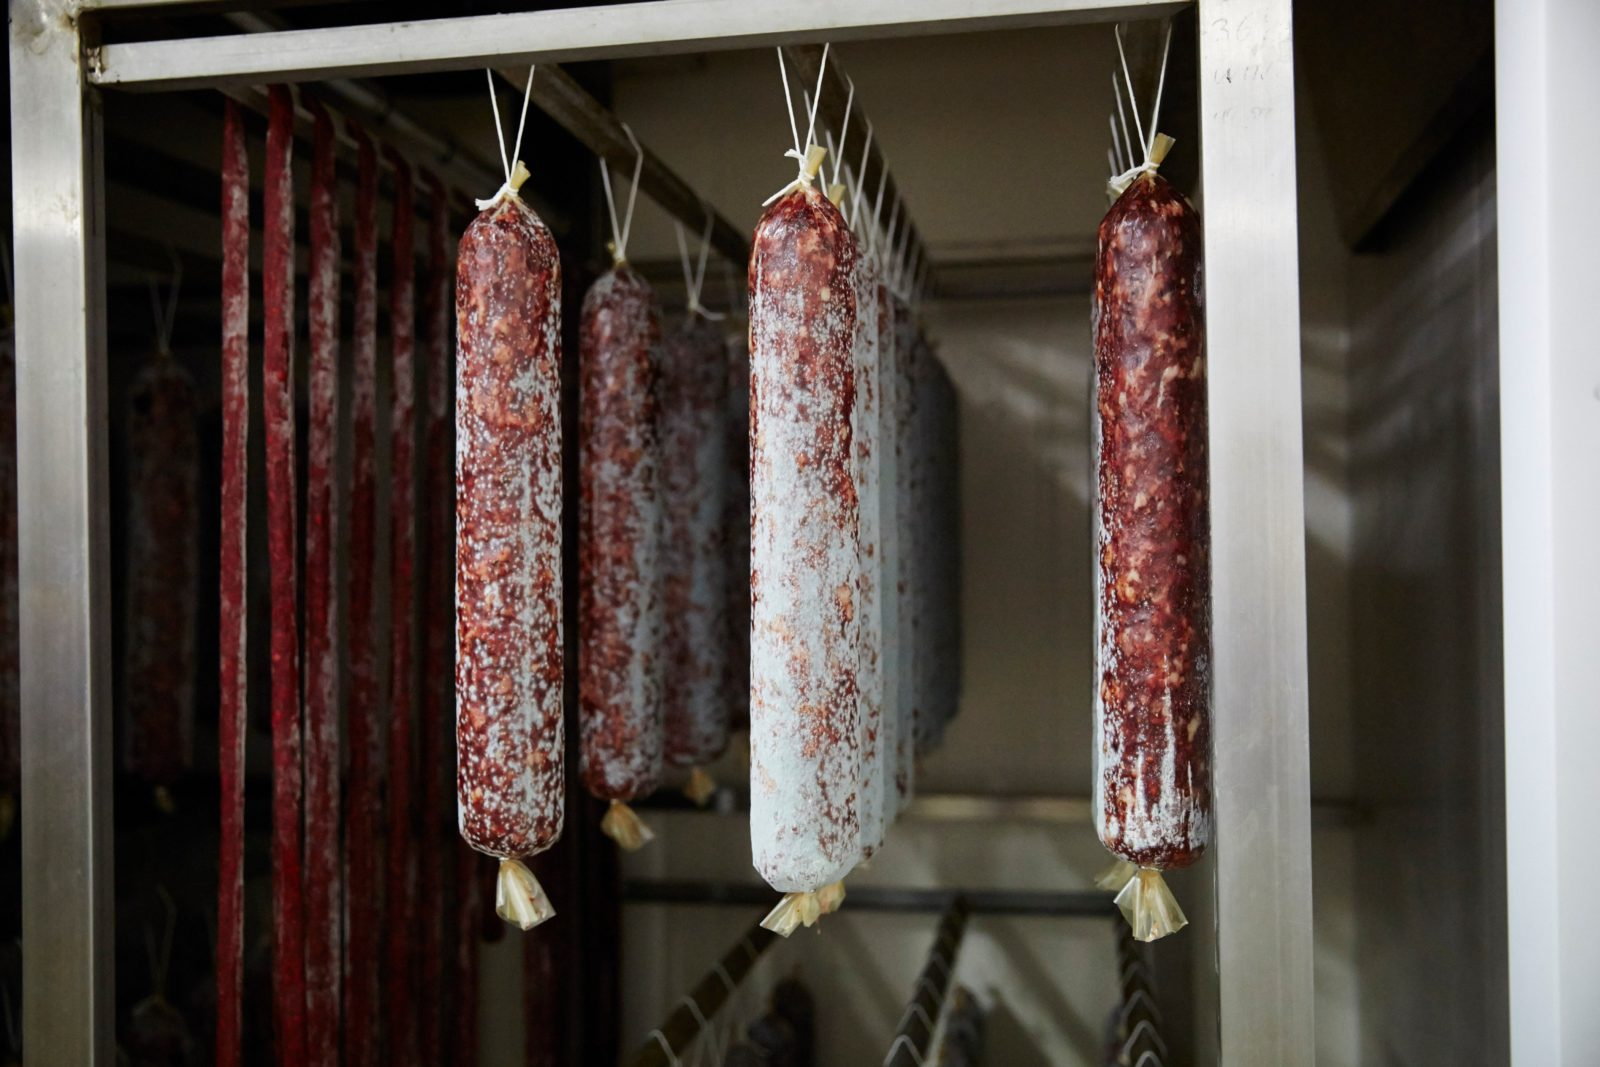 Griffith local salami